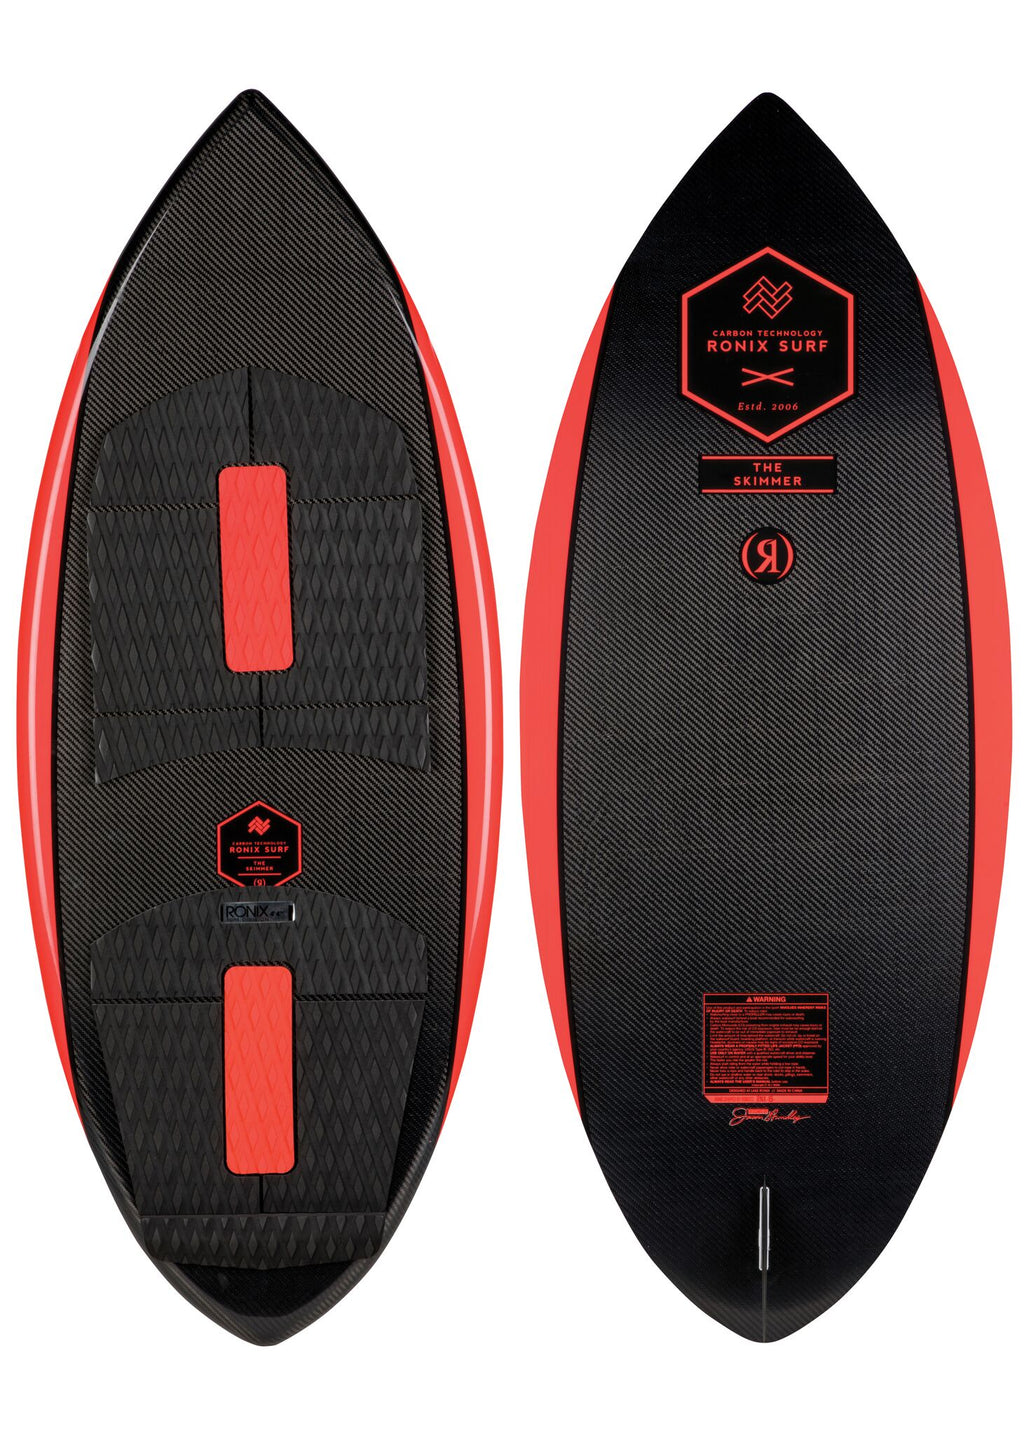 RONIX Carbon Air Core 3 - The Skimmer - Carbon / Caffeinated